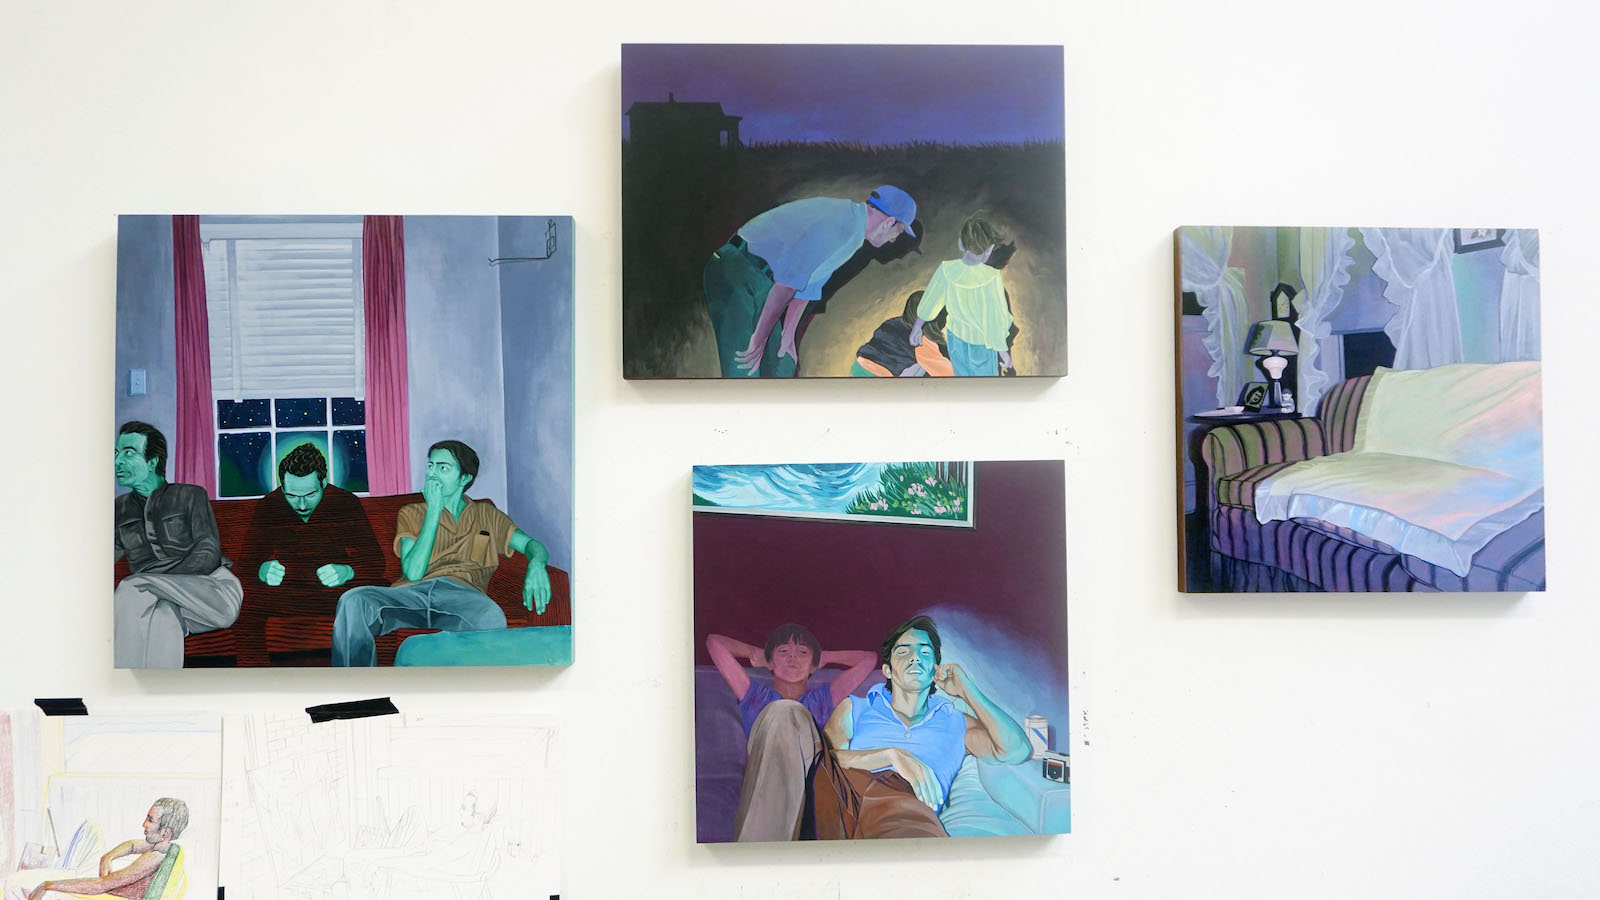 Marianna Olague, Small paintings inspired by old photographs, 2018 Location: My studio at Cranbrook Academy of Art in Bloomfield Hills, Michigan. Photo Credit: Conrad Egyir